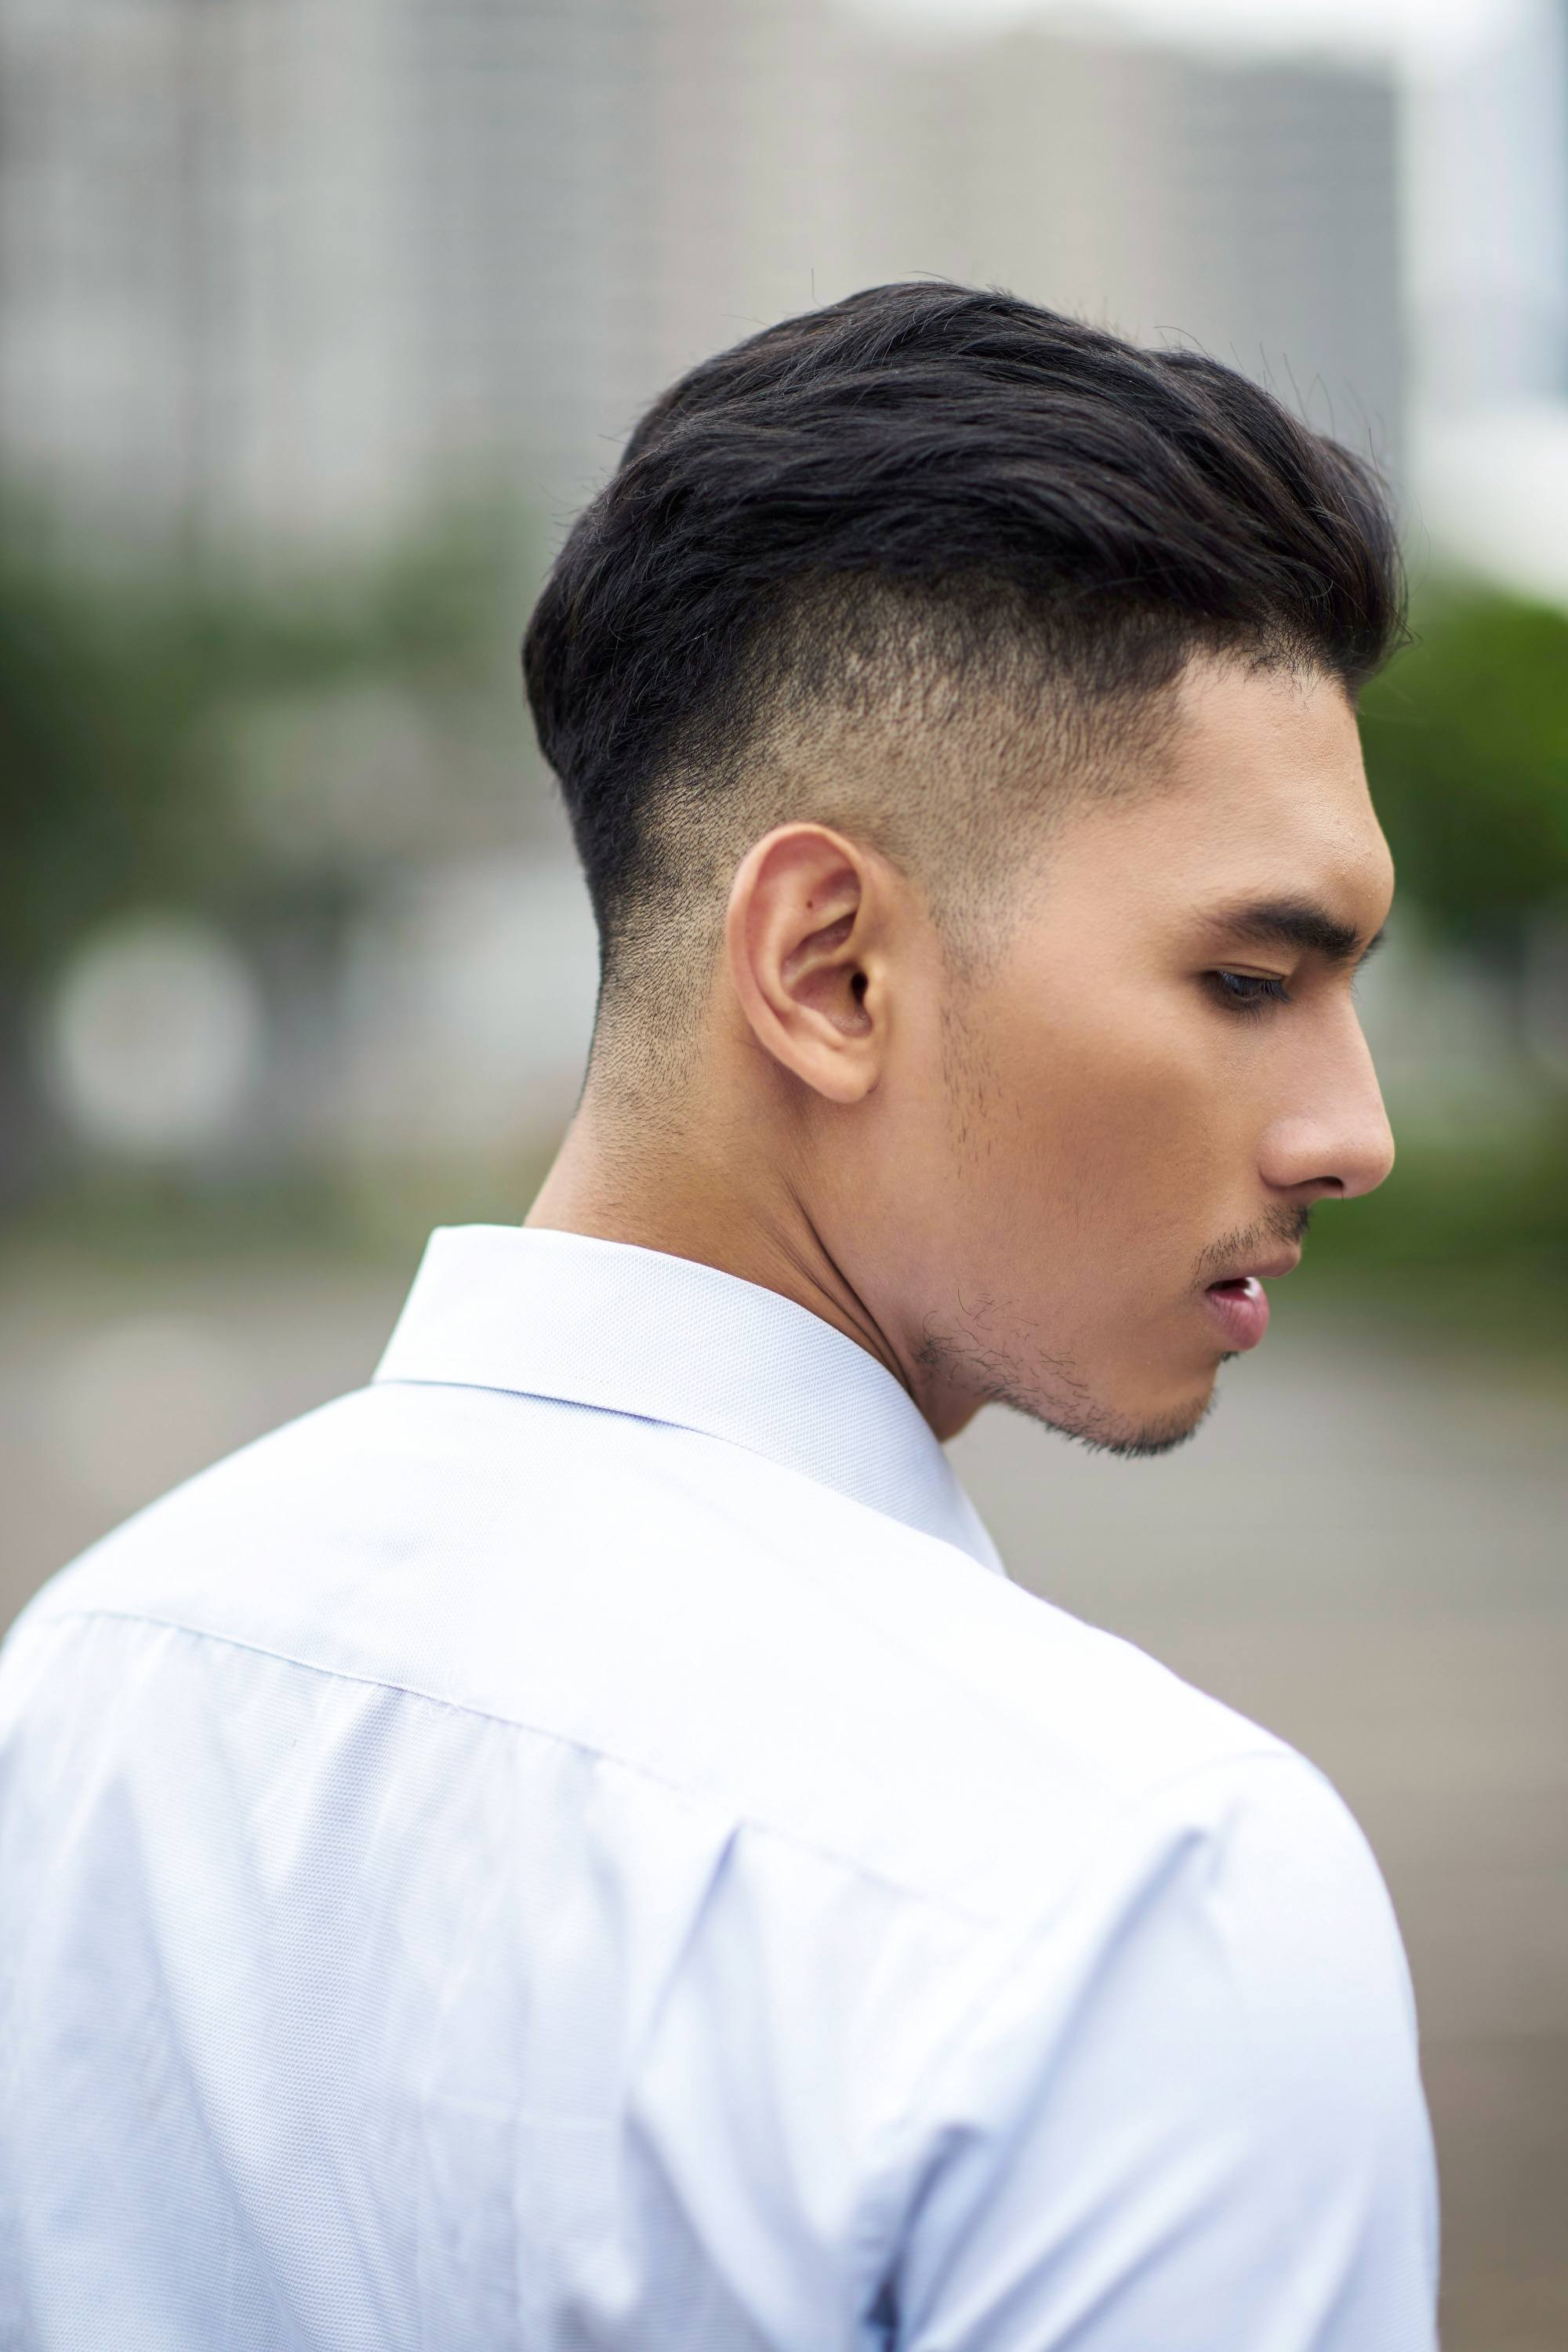 How To Slick Back Hair (2021 Guide)